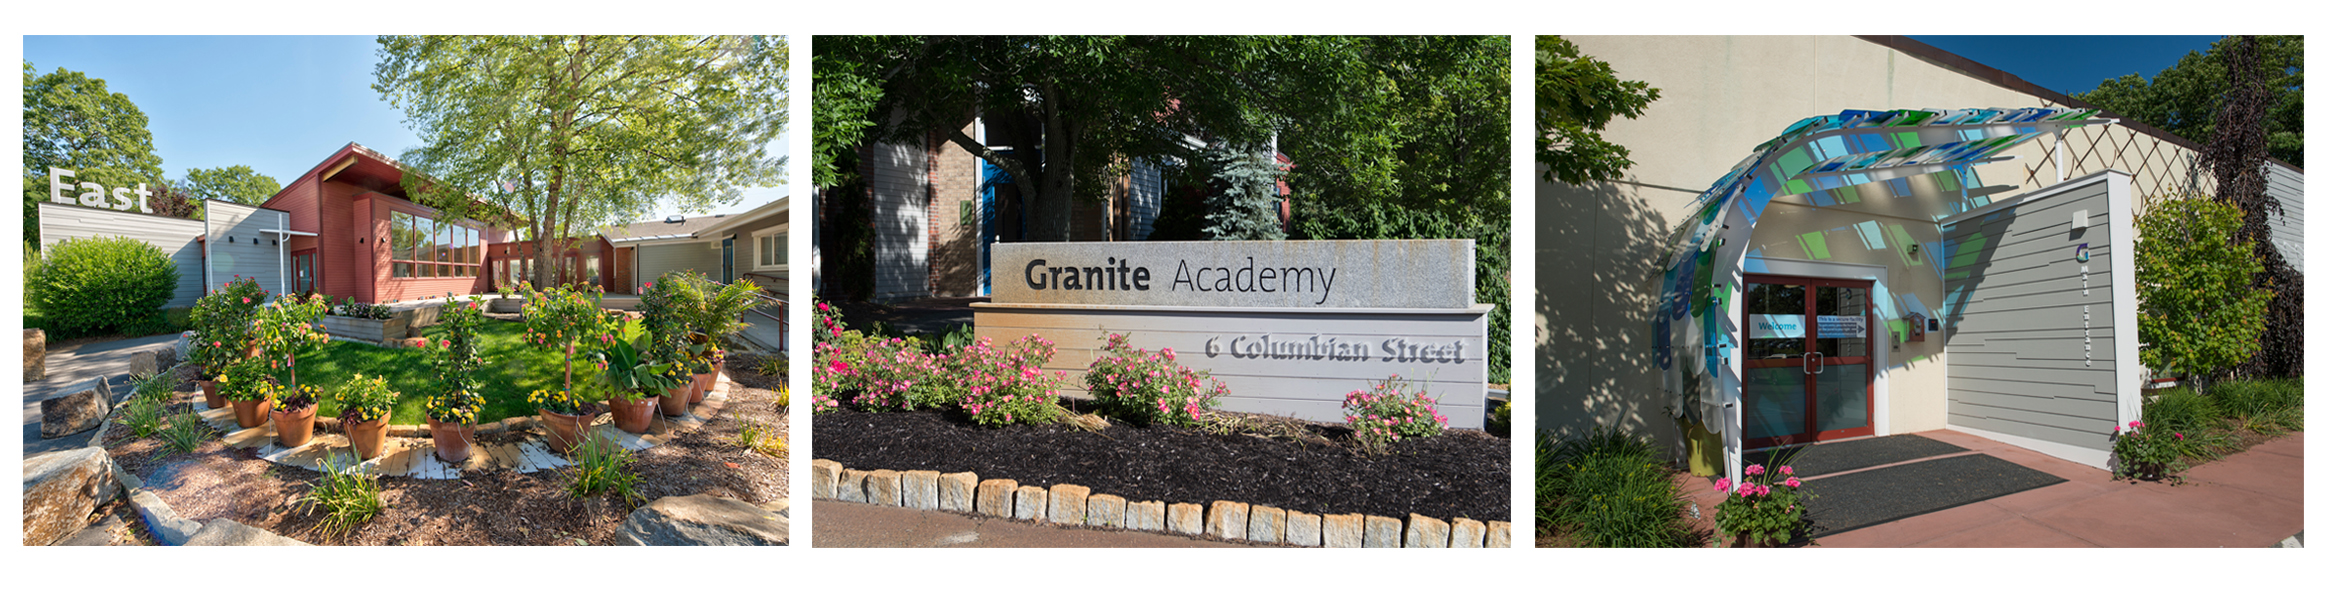 Granite Academy outside